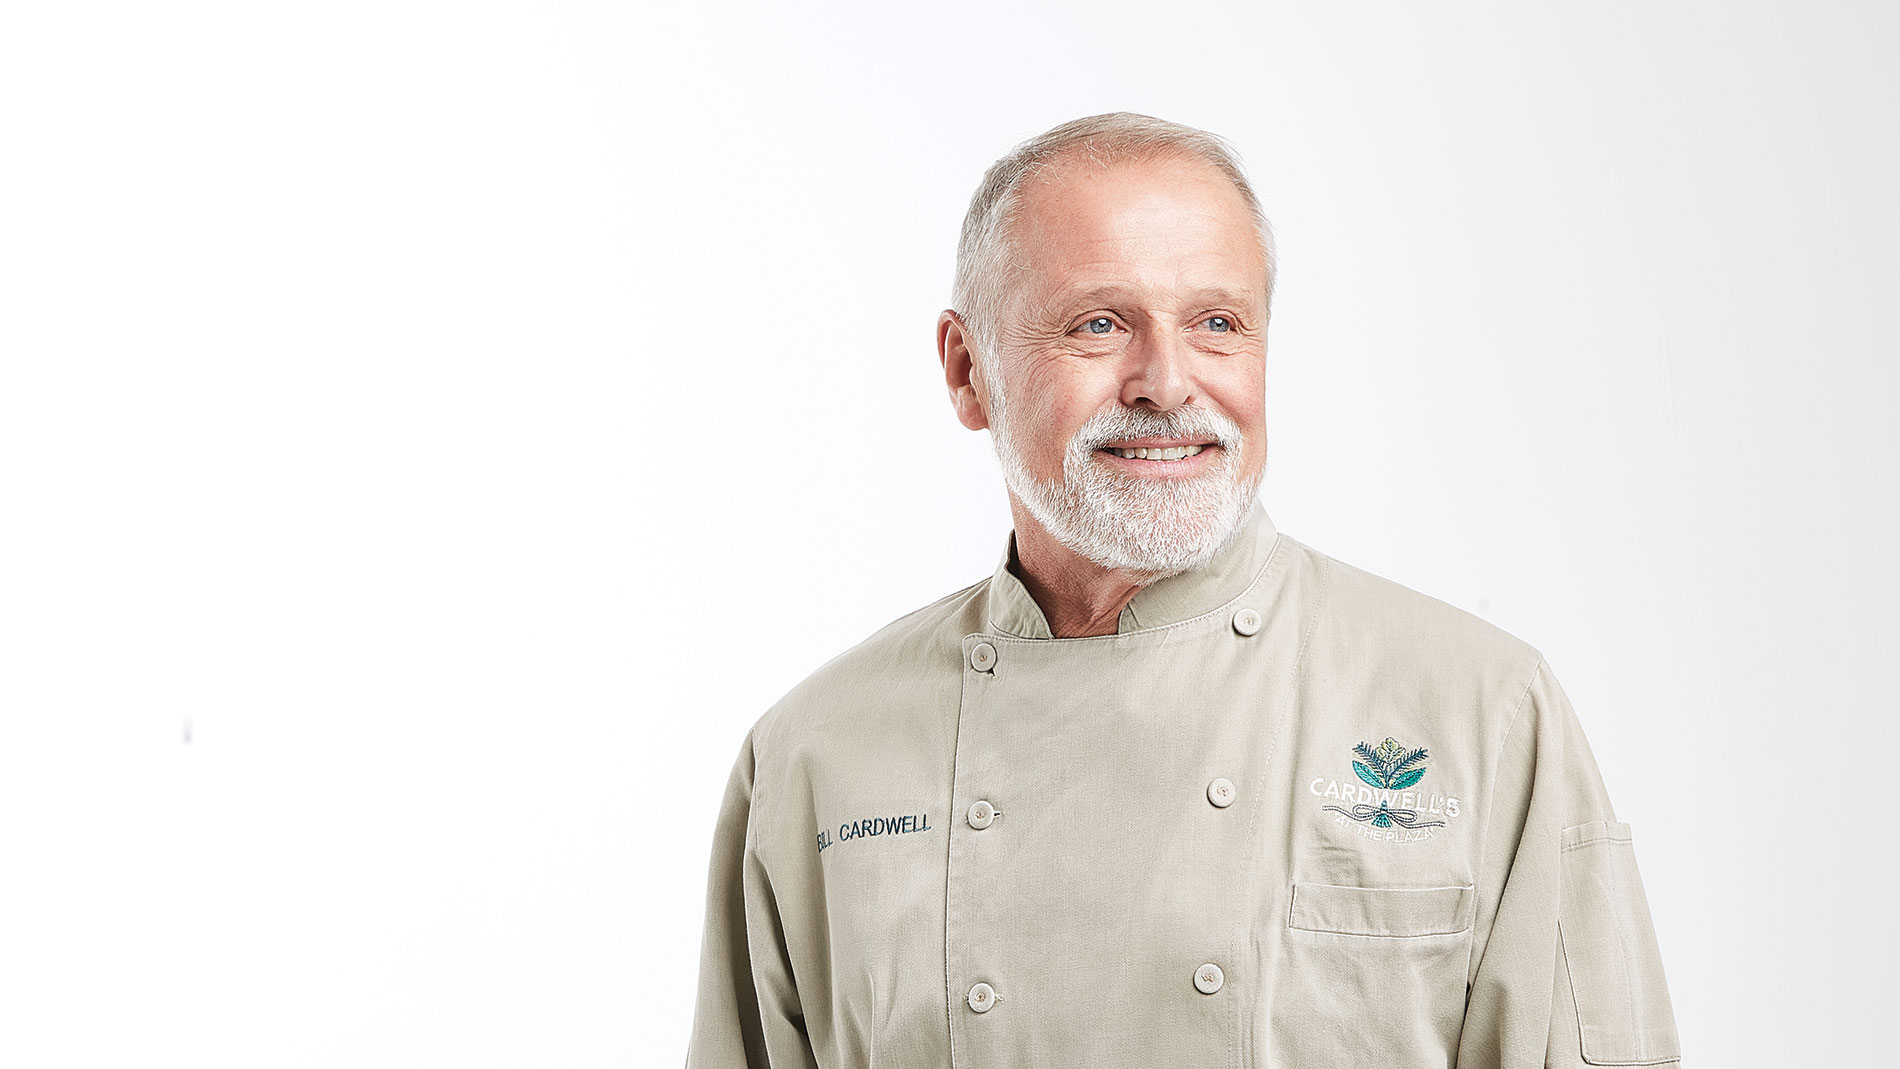 a man with a gray beard and a chef coat